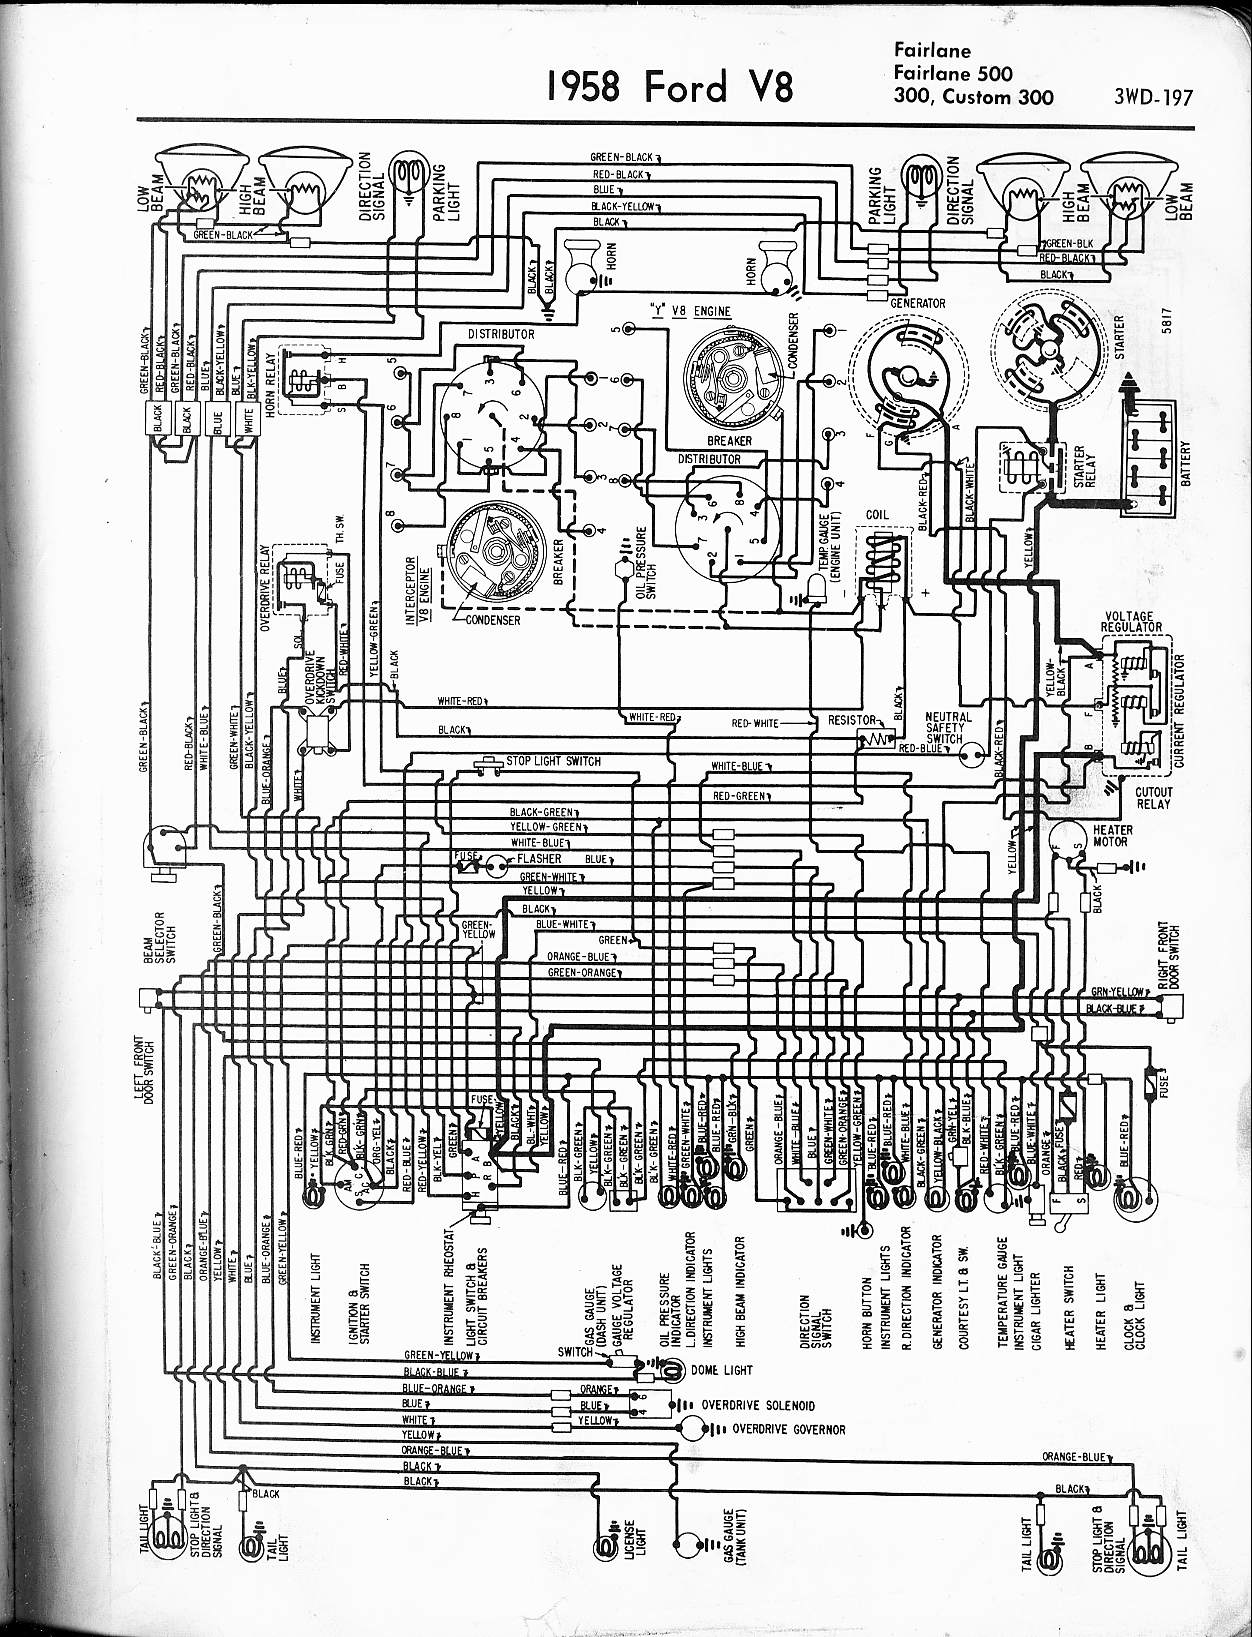 1970 fairlane wiring diagram box wiring diagram rh 3 pfotenpower ev de 1970 Ford Truck Wiring Diagrams 1970 Ford Truck Wiring Diagrams